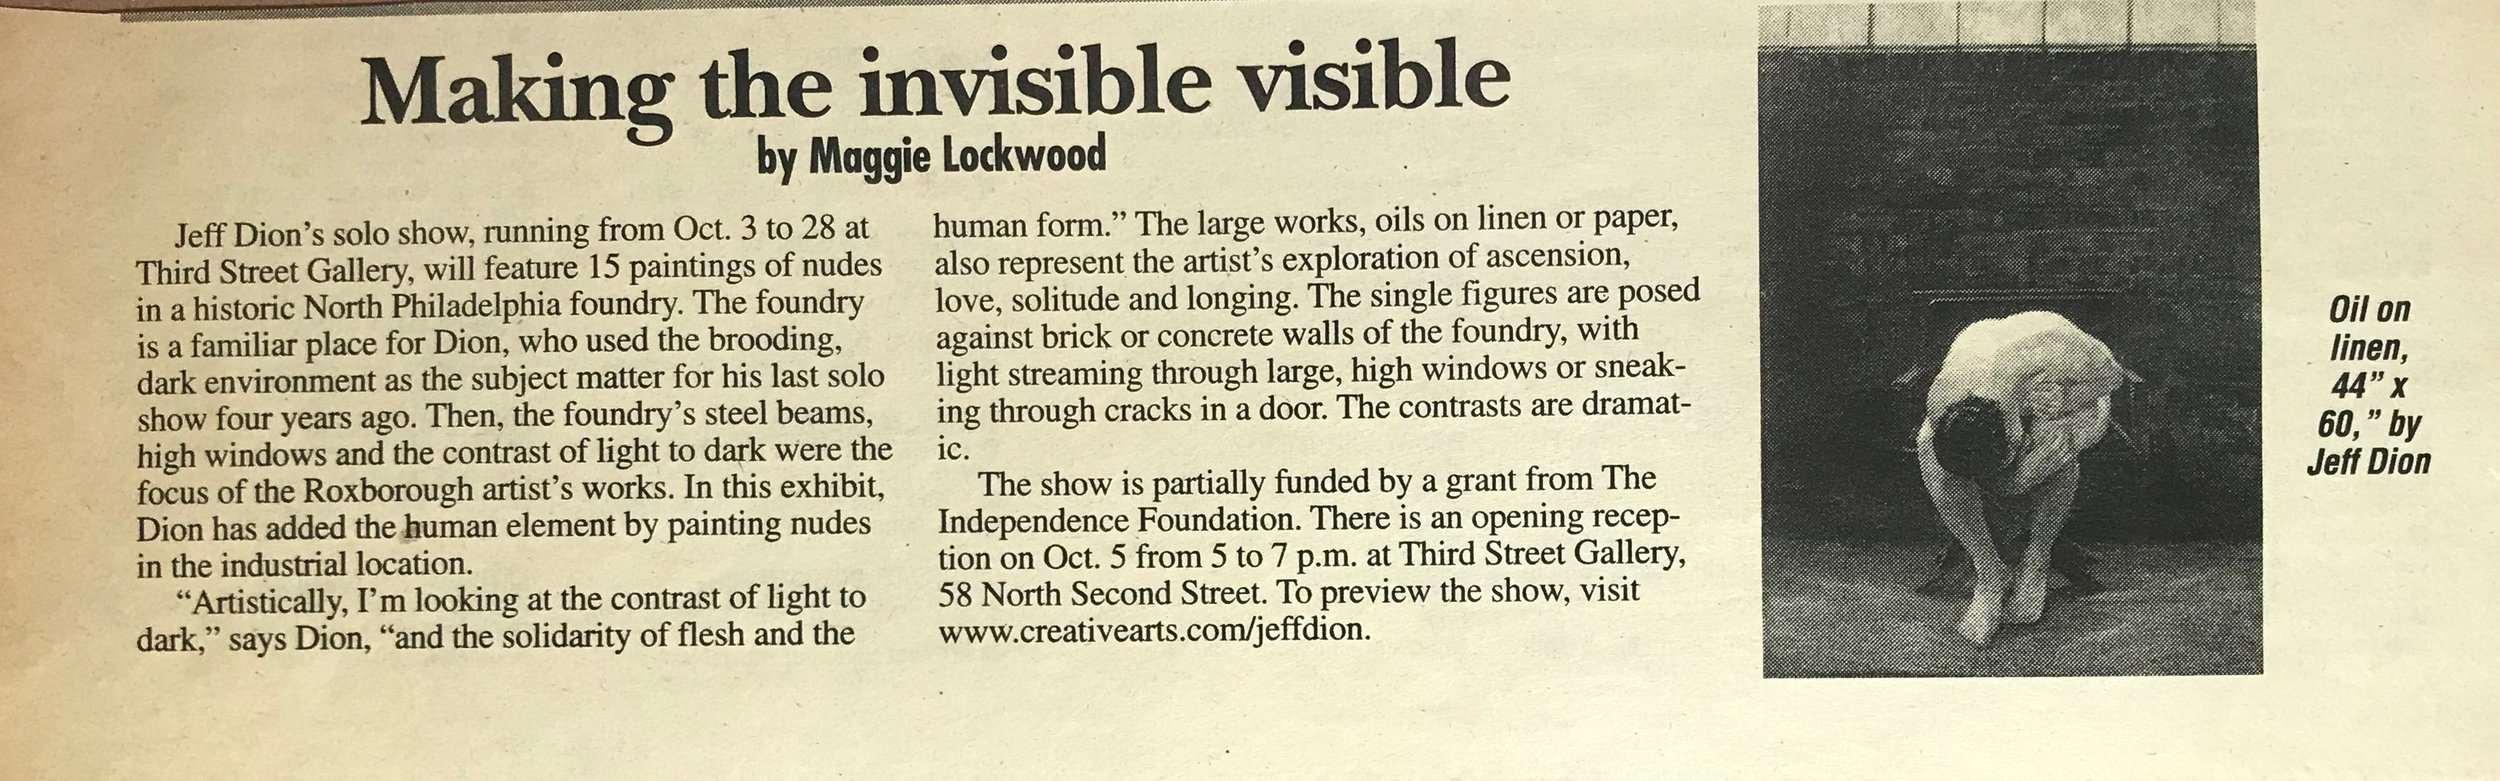 Making the Invisible Visible Maggie Lockwood 2000